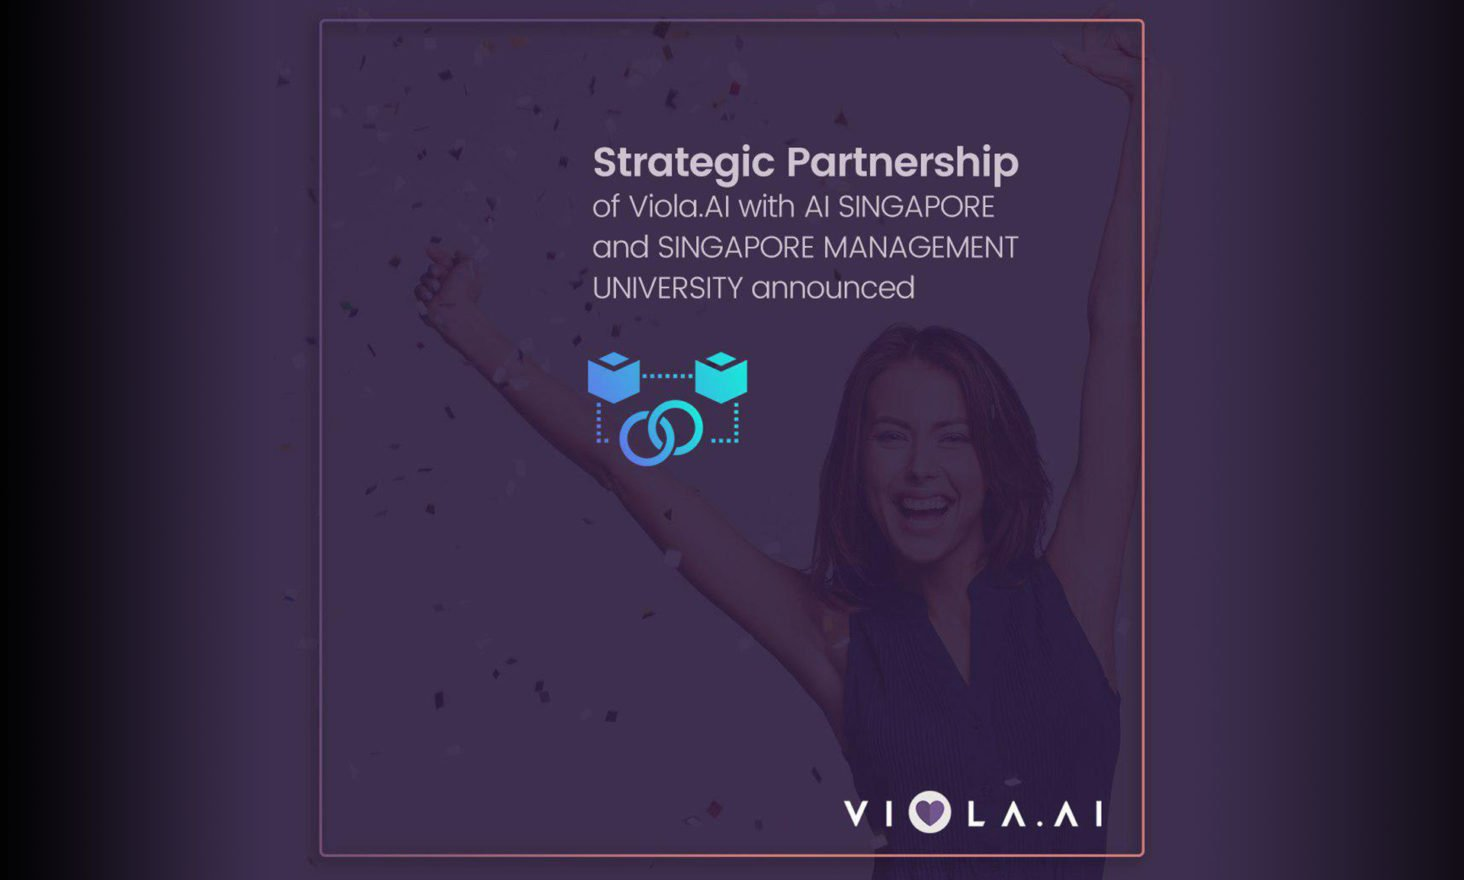 Viola.AI, AI Singapore and Singapore Management University Announced Strategic Partnership to Develop Robust AI Matching and Recommendations Engine for World's First Lifelong Love AI